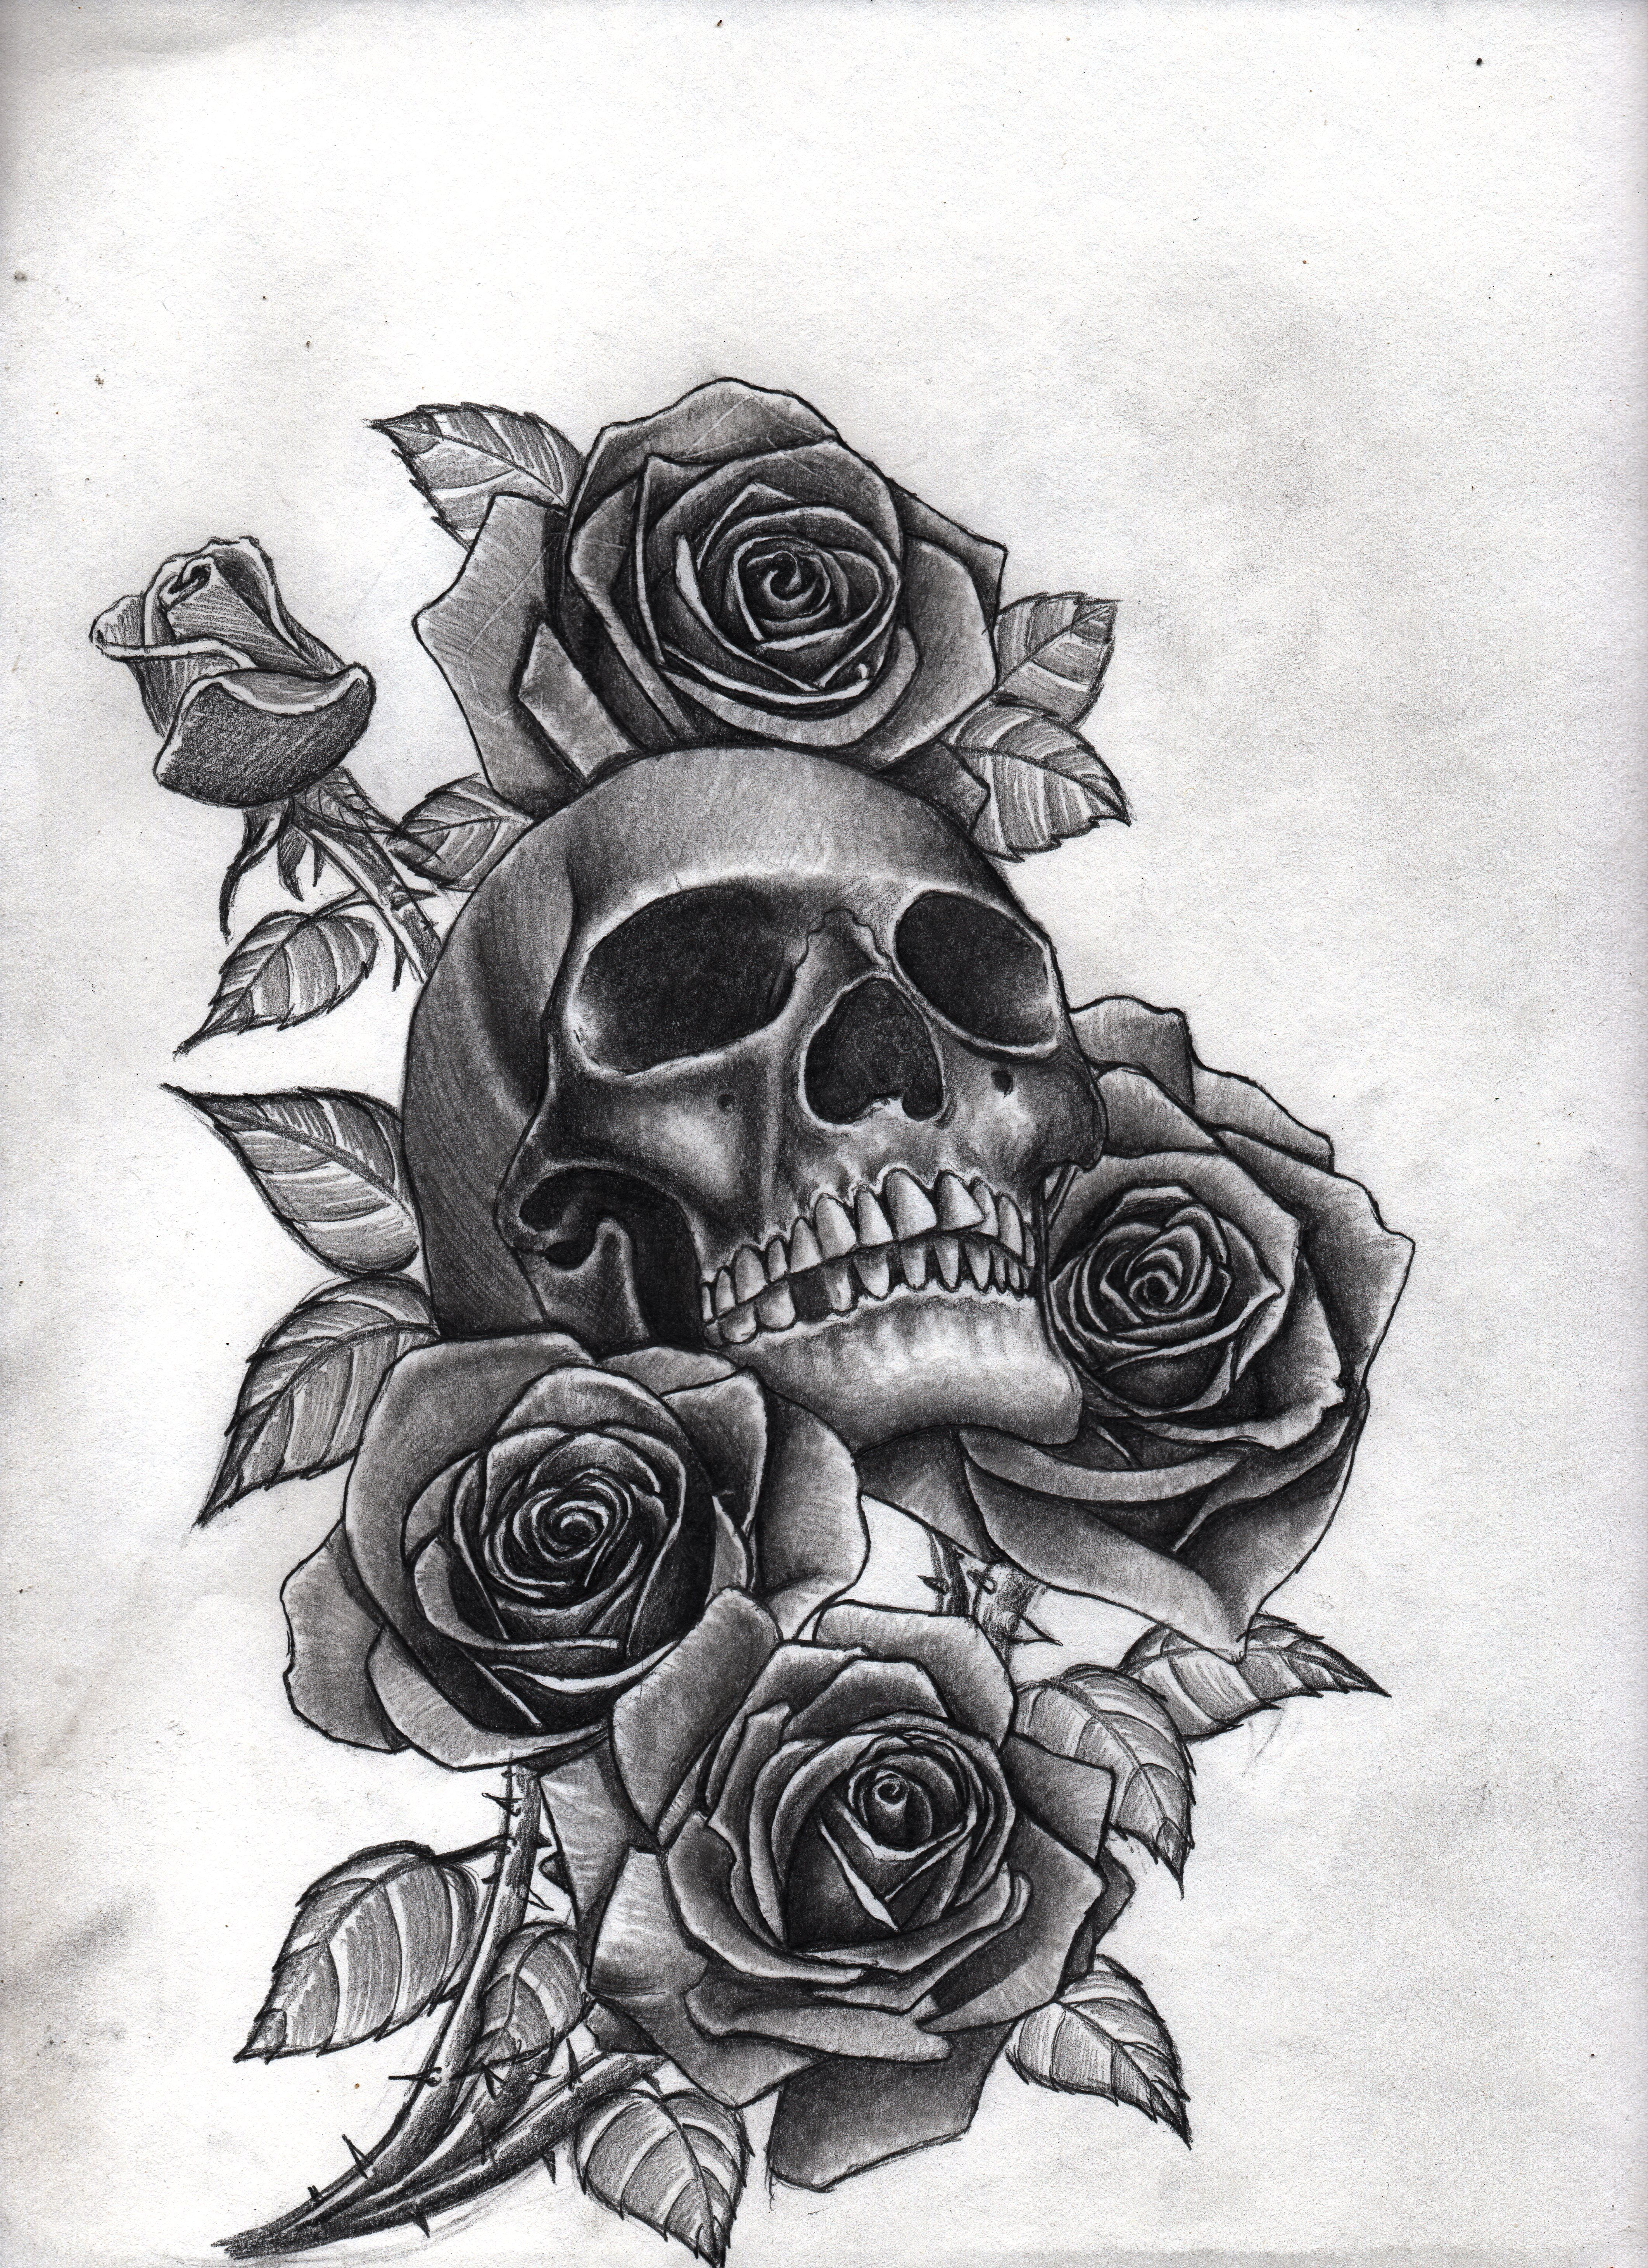 roses and skull by bobby castaldi art 4 250 5 849 pixels tattoo ideas pinterest. Black Bedroom Furniture Sets. Home Design Ideas